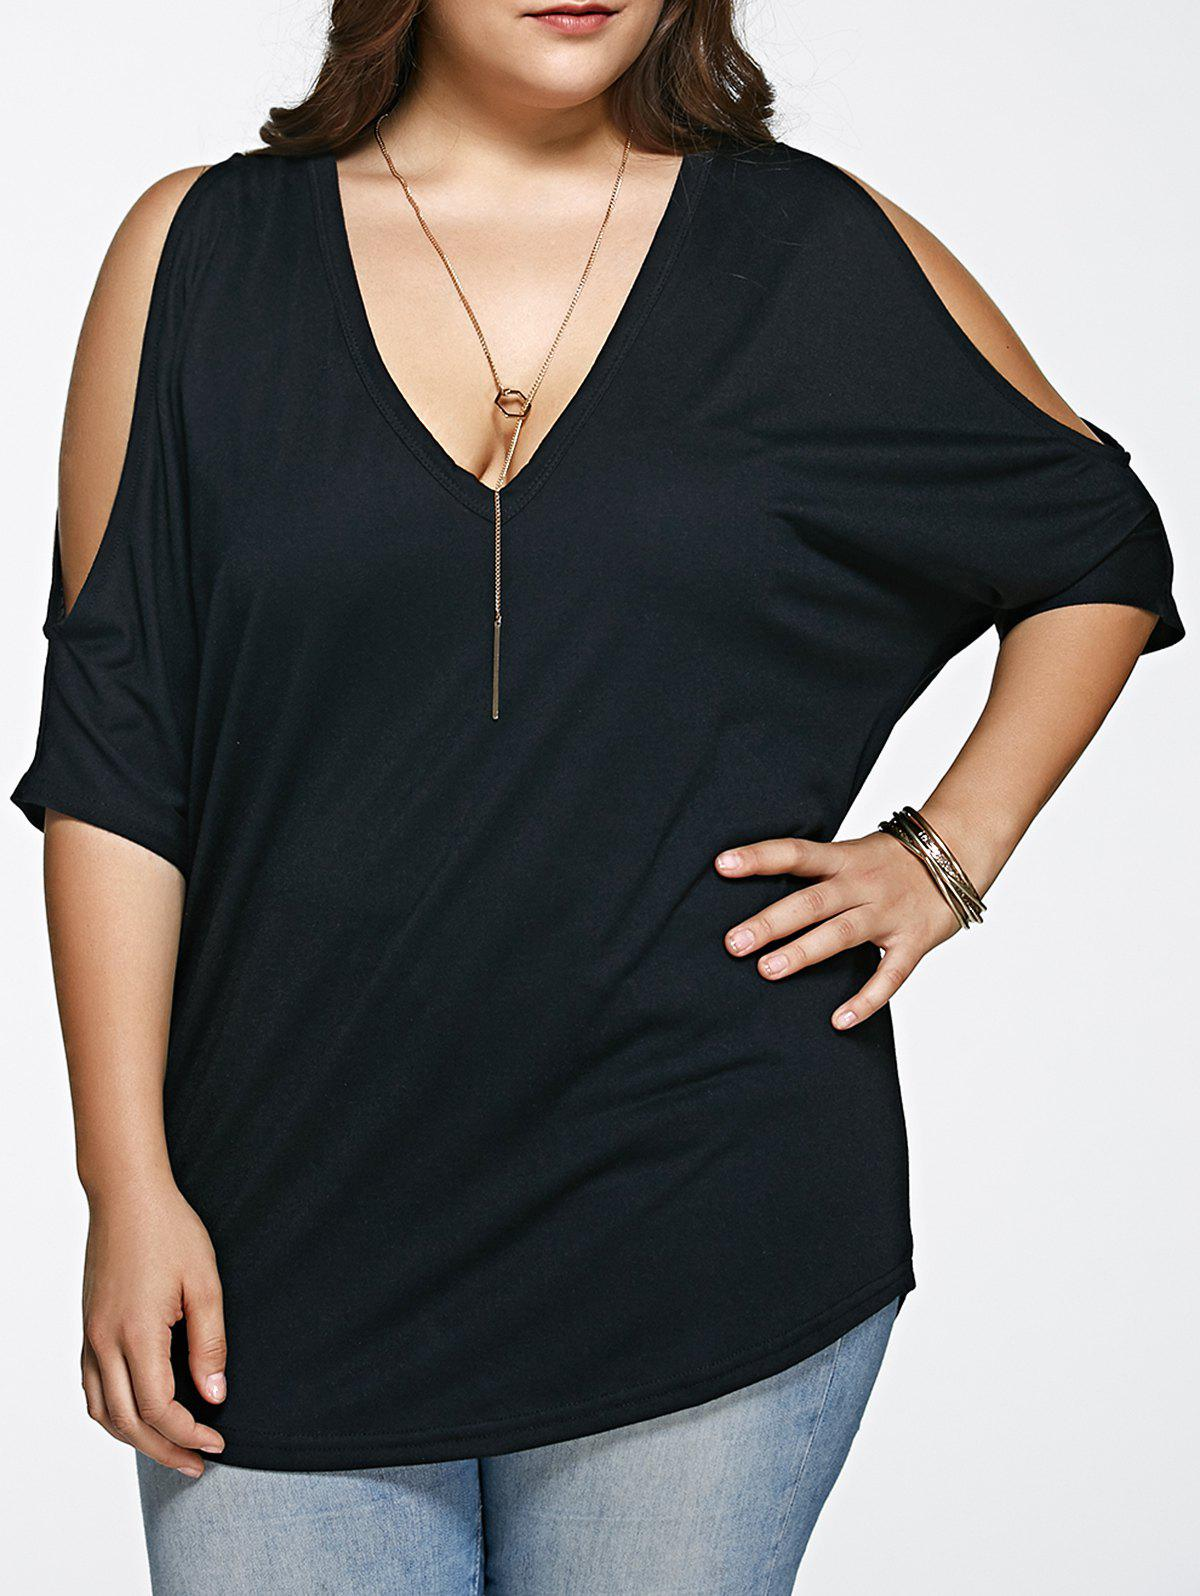 Plus Size Loose Fitting Cold Shoulder T-Shirt - BLACK 3XL